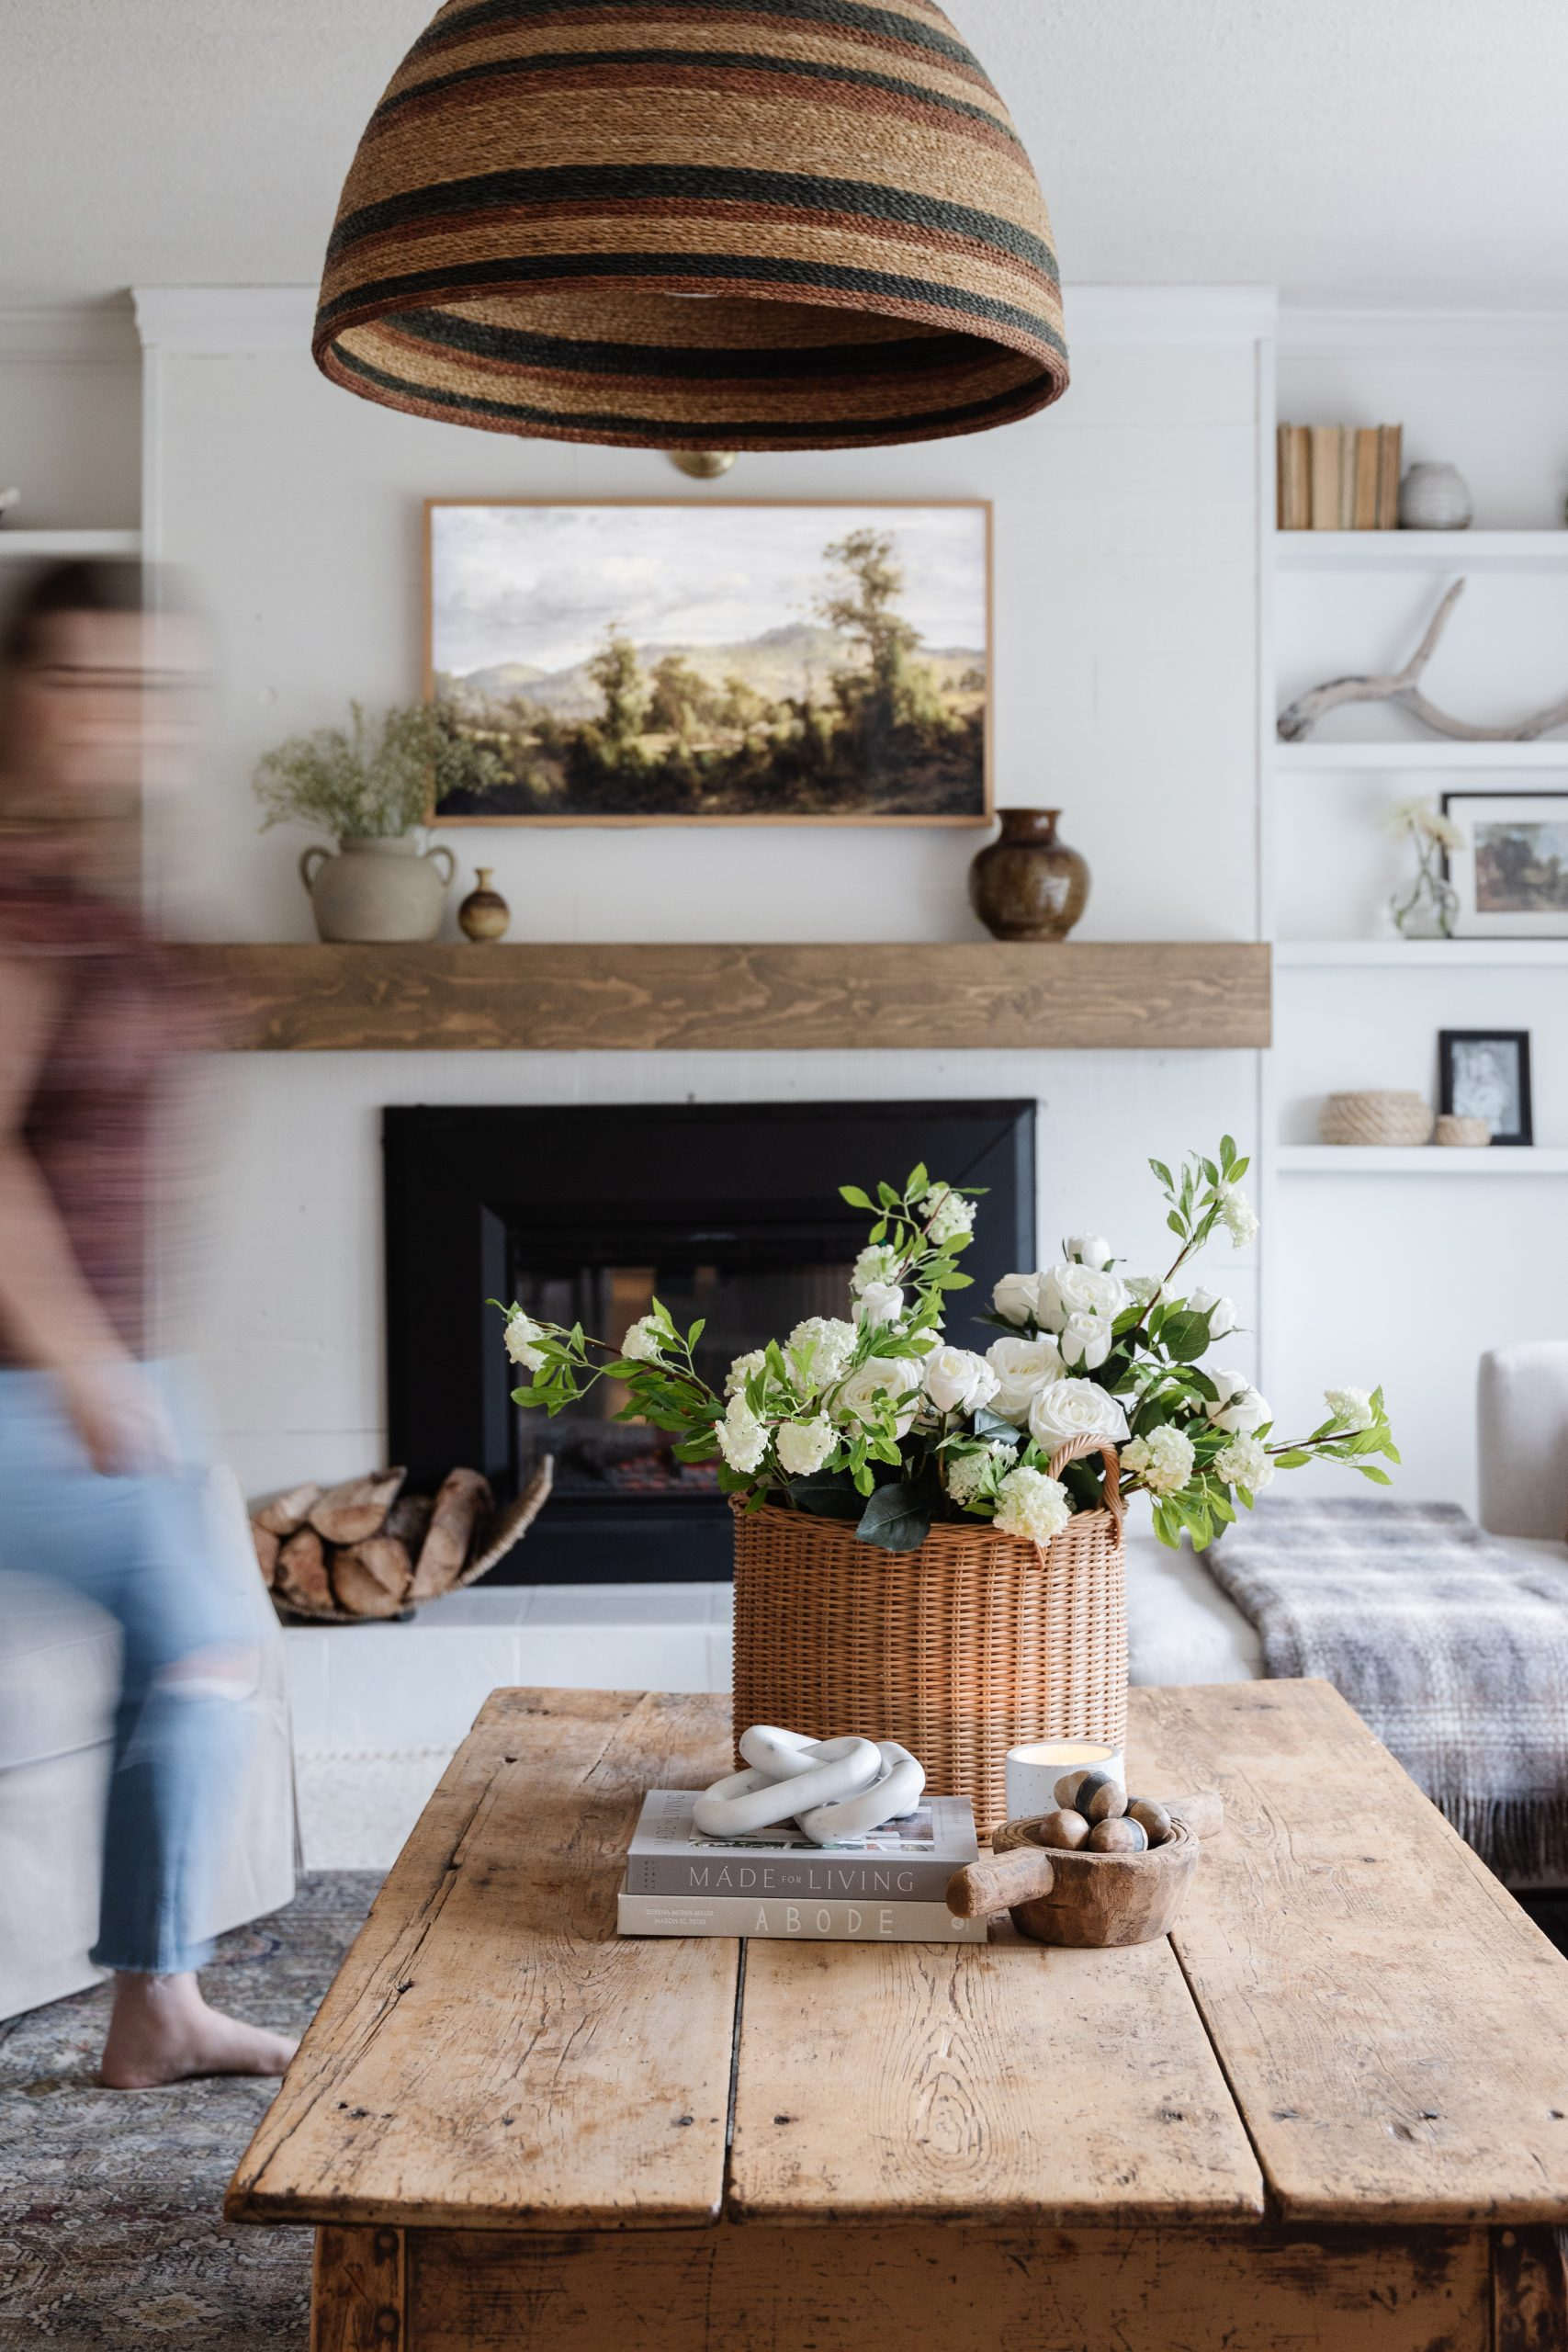 How To Style A Coffee Table. My tips to style a beautiful and warm modern coffee table with different textures and heights.